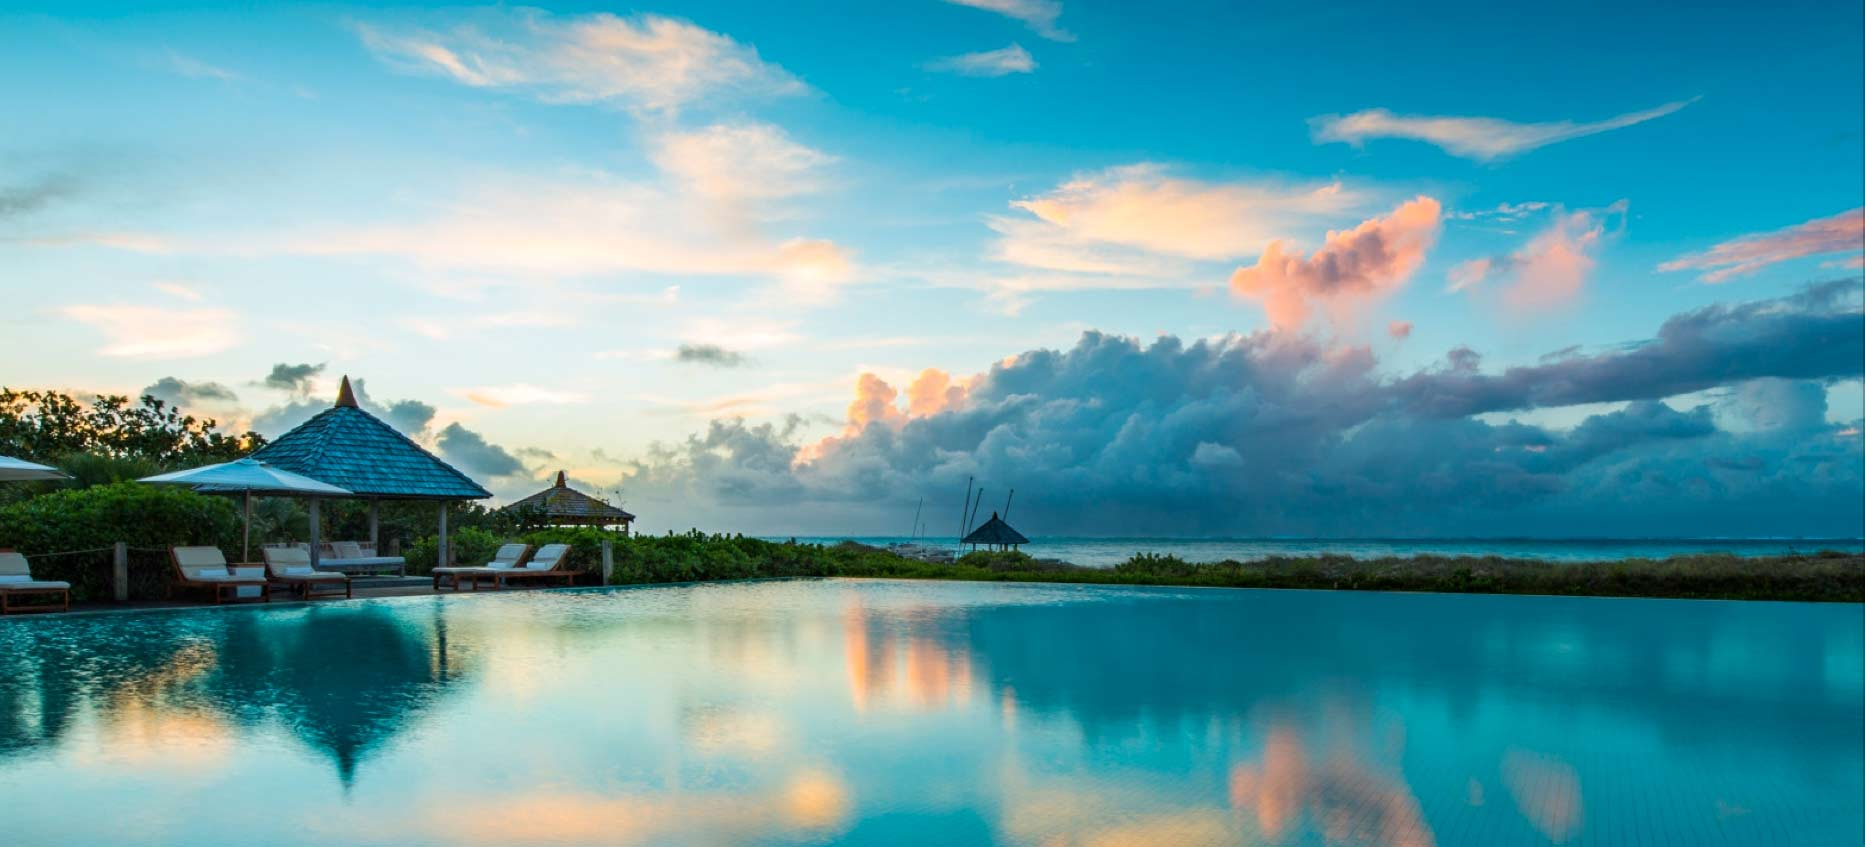 parrot cay by como